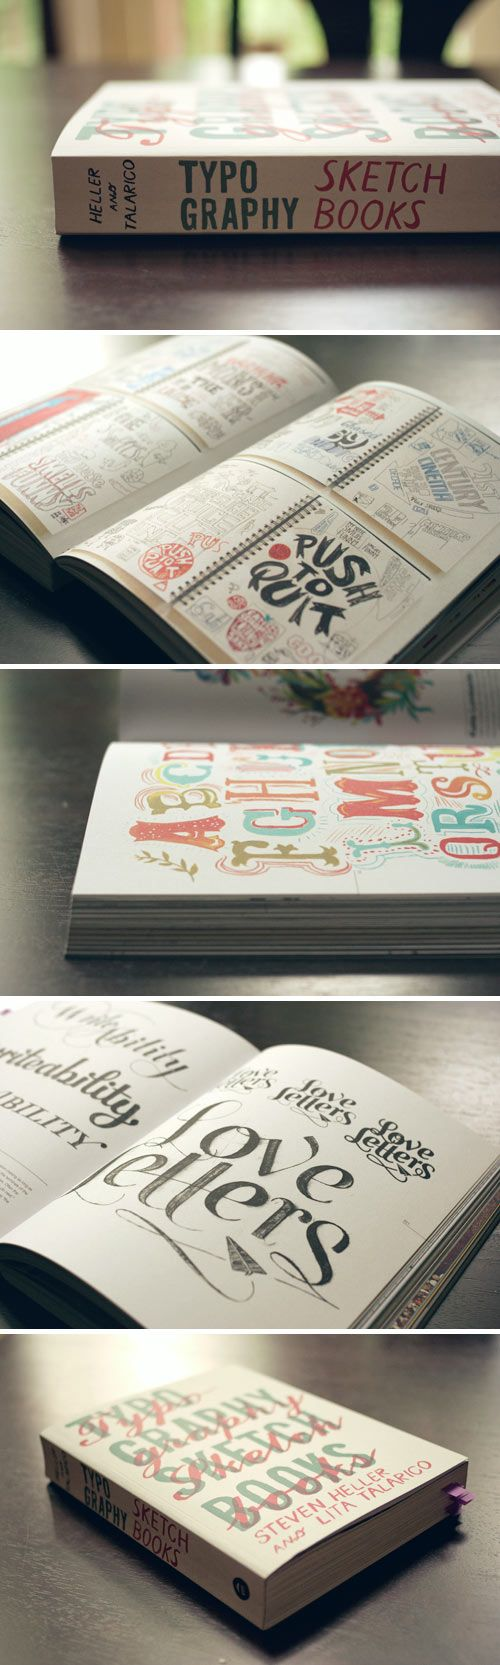 Typography Sketchbooks.